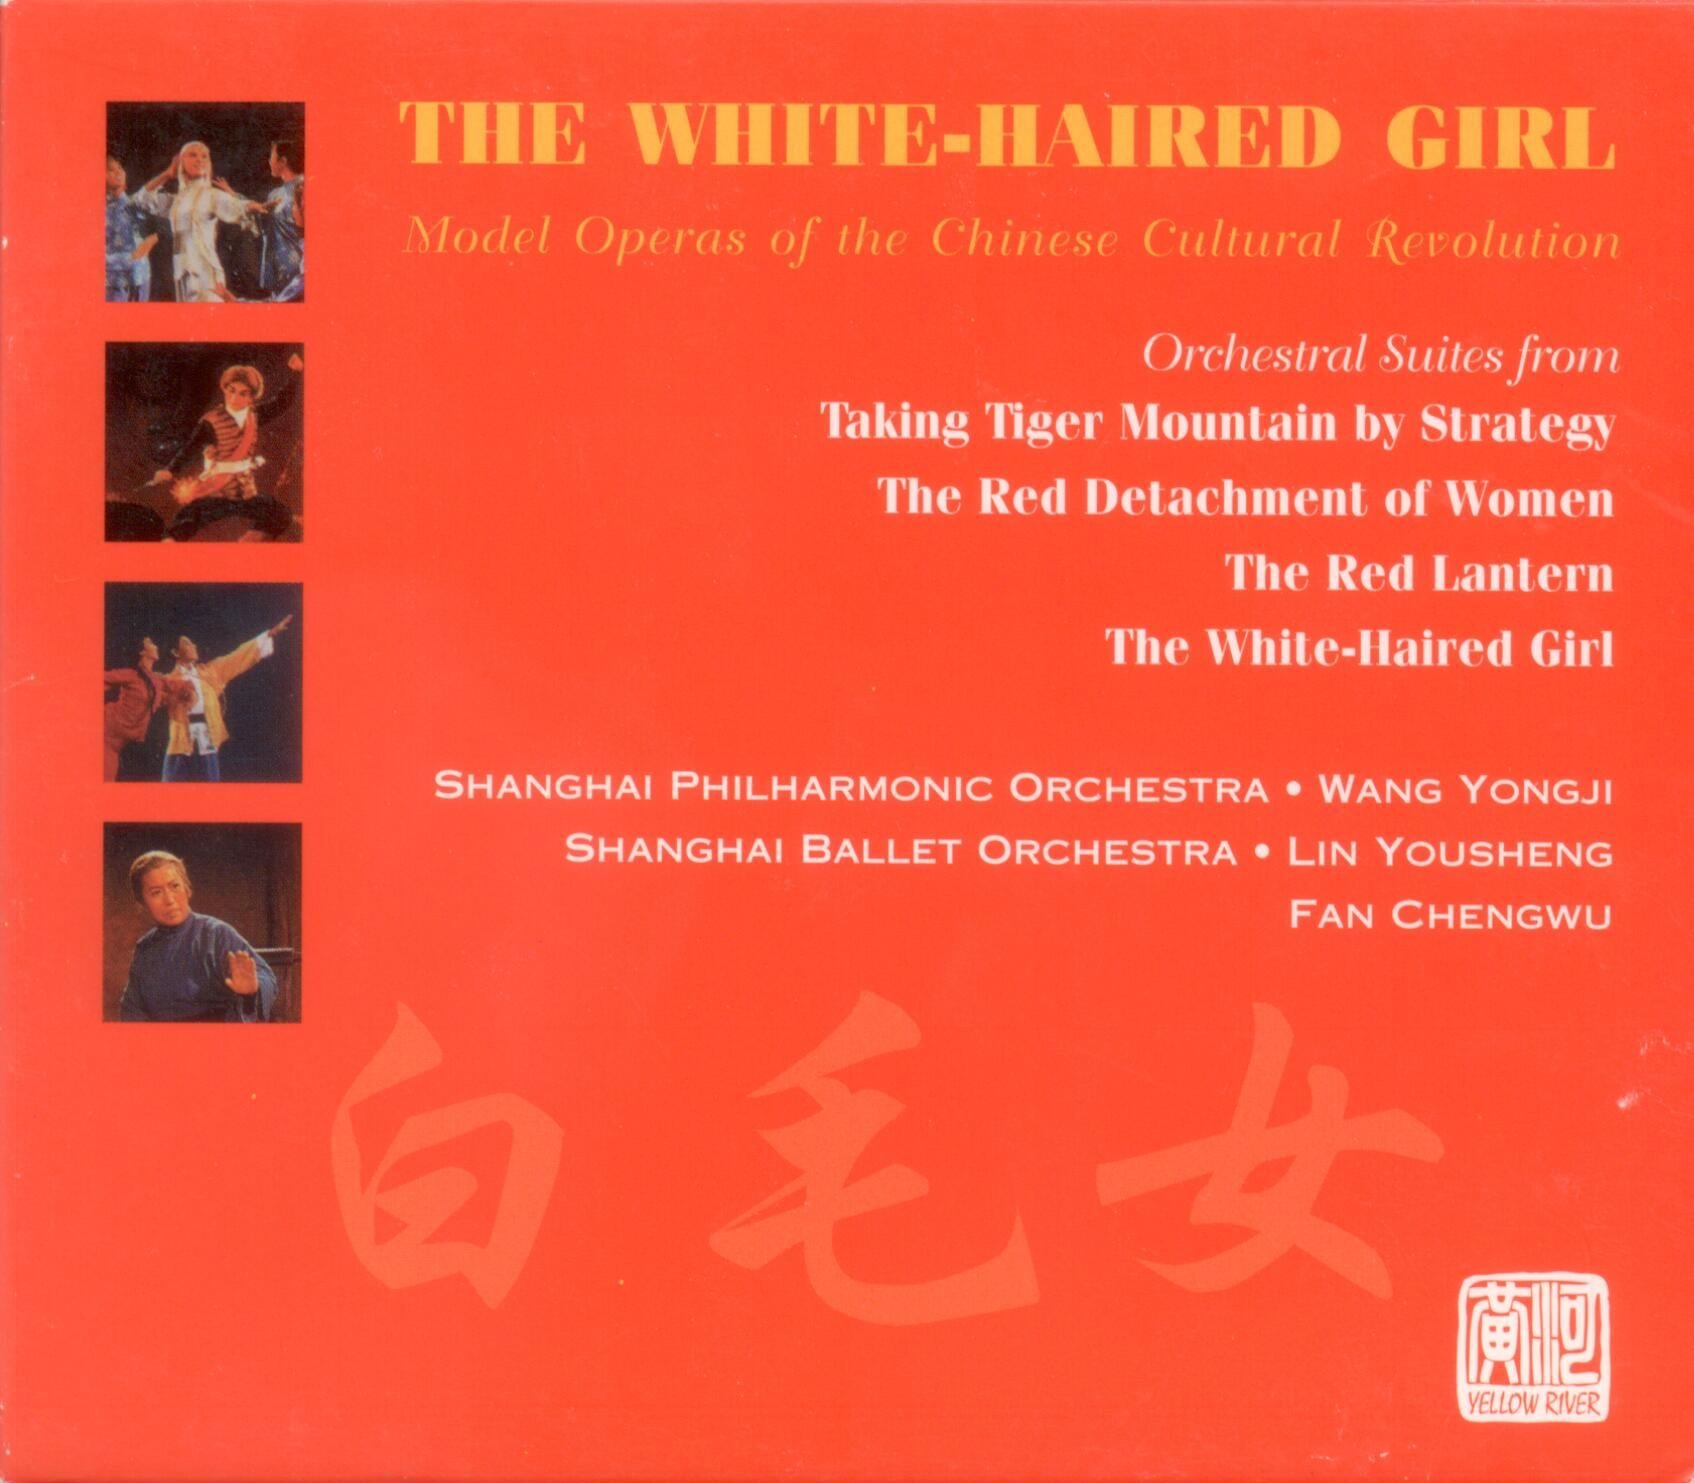 The White-Haired Girl: Model Operas of the Chinese Cultural Revolution: Orchestral Suites From Taking Tiger Mountain By Strategy, The Red Detachment of Women. The Red Lantern, and The White-Haired Girl by Yellow River  / HNH